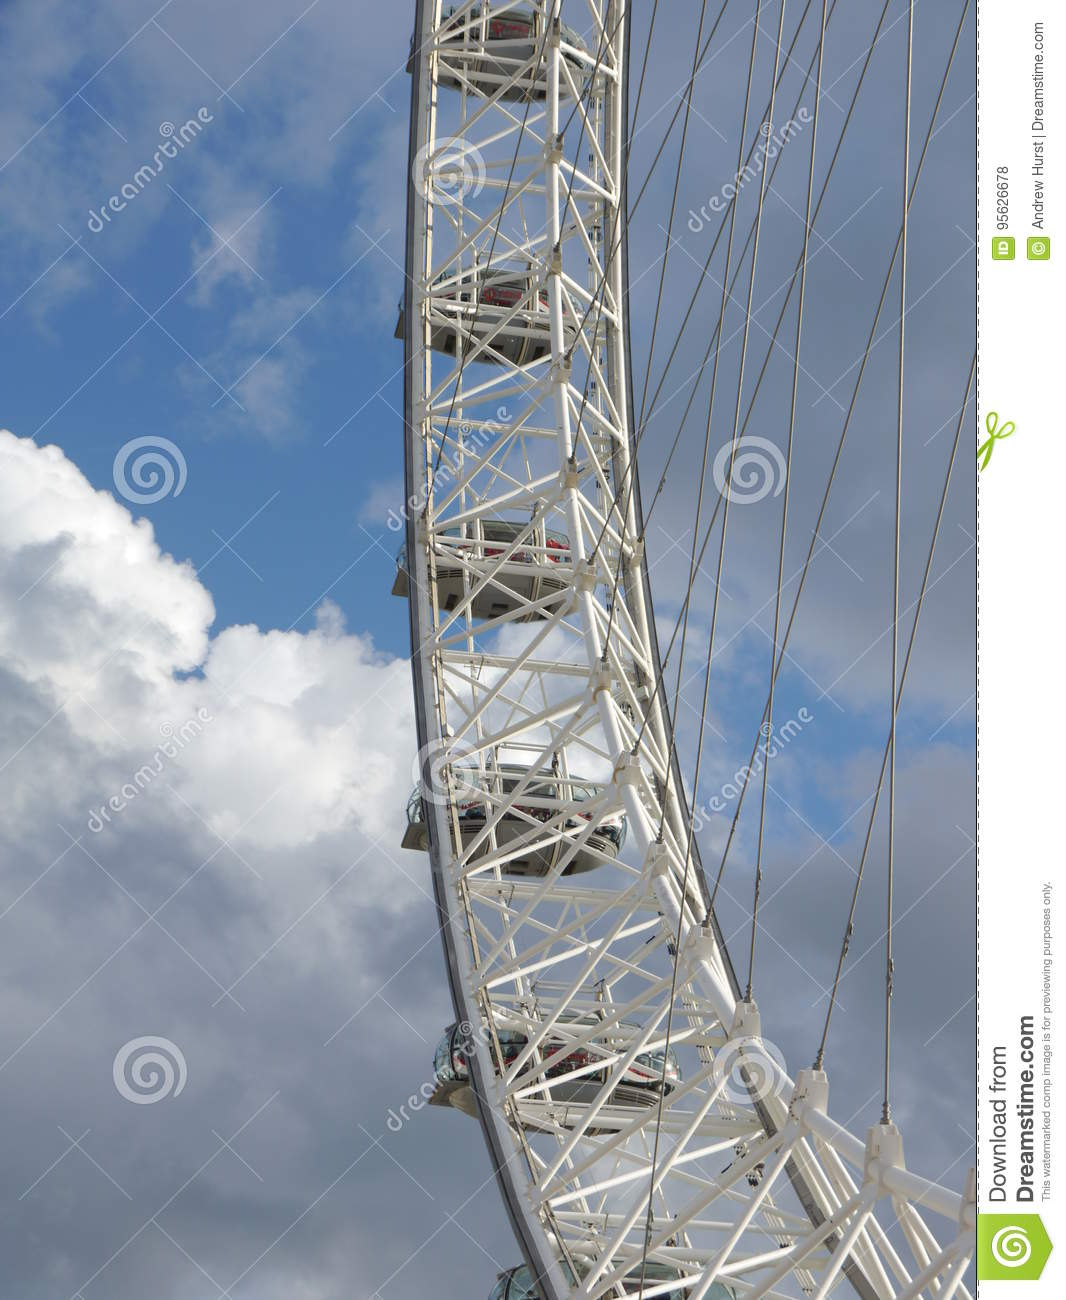 millennium big wheel london eye abstract editorial stock photo